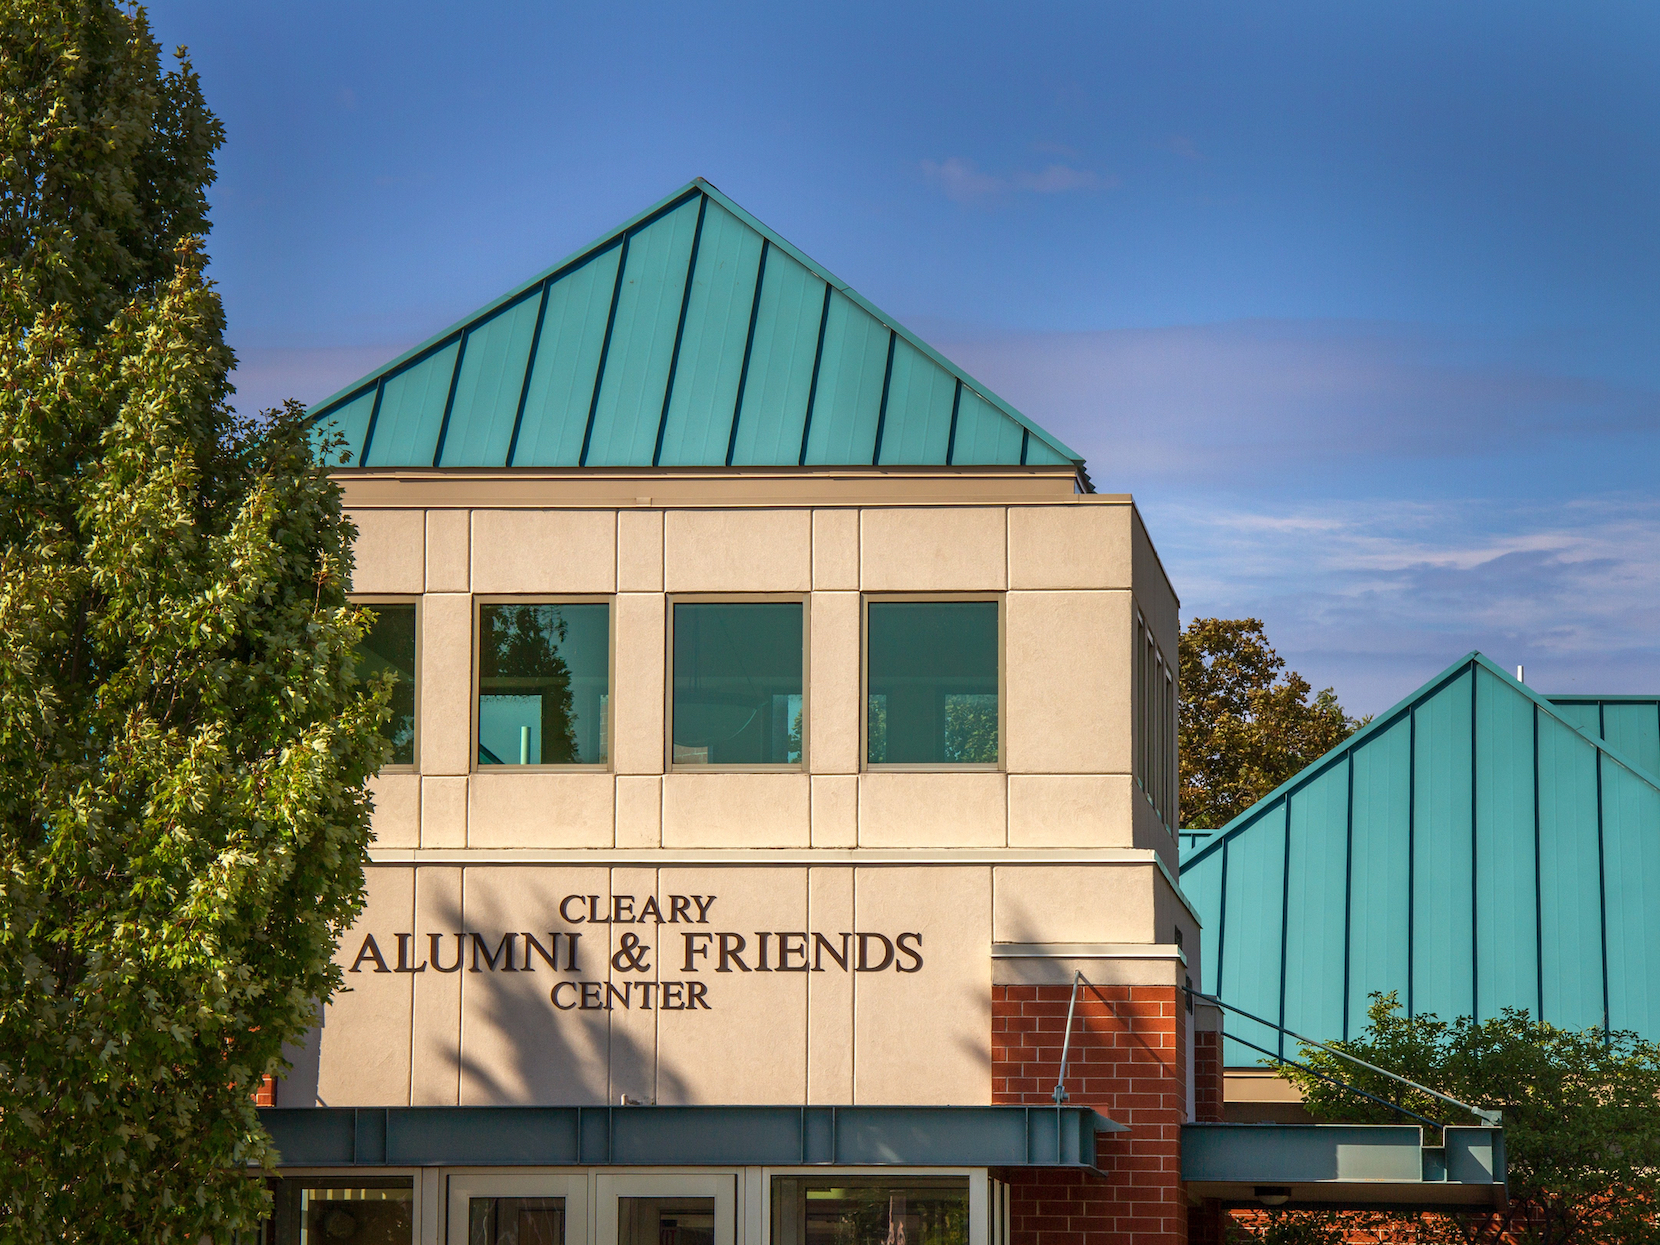 featured image of Cleary Alumni & Friends Center